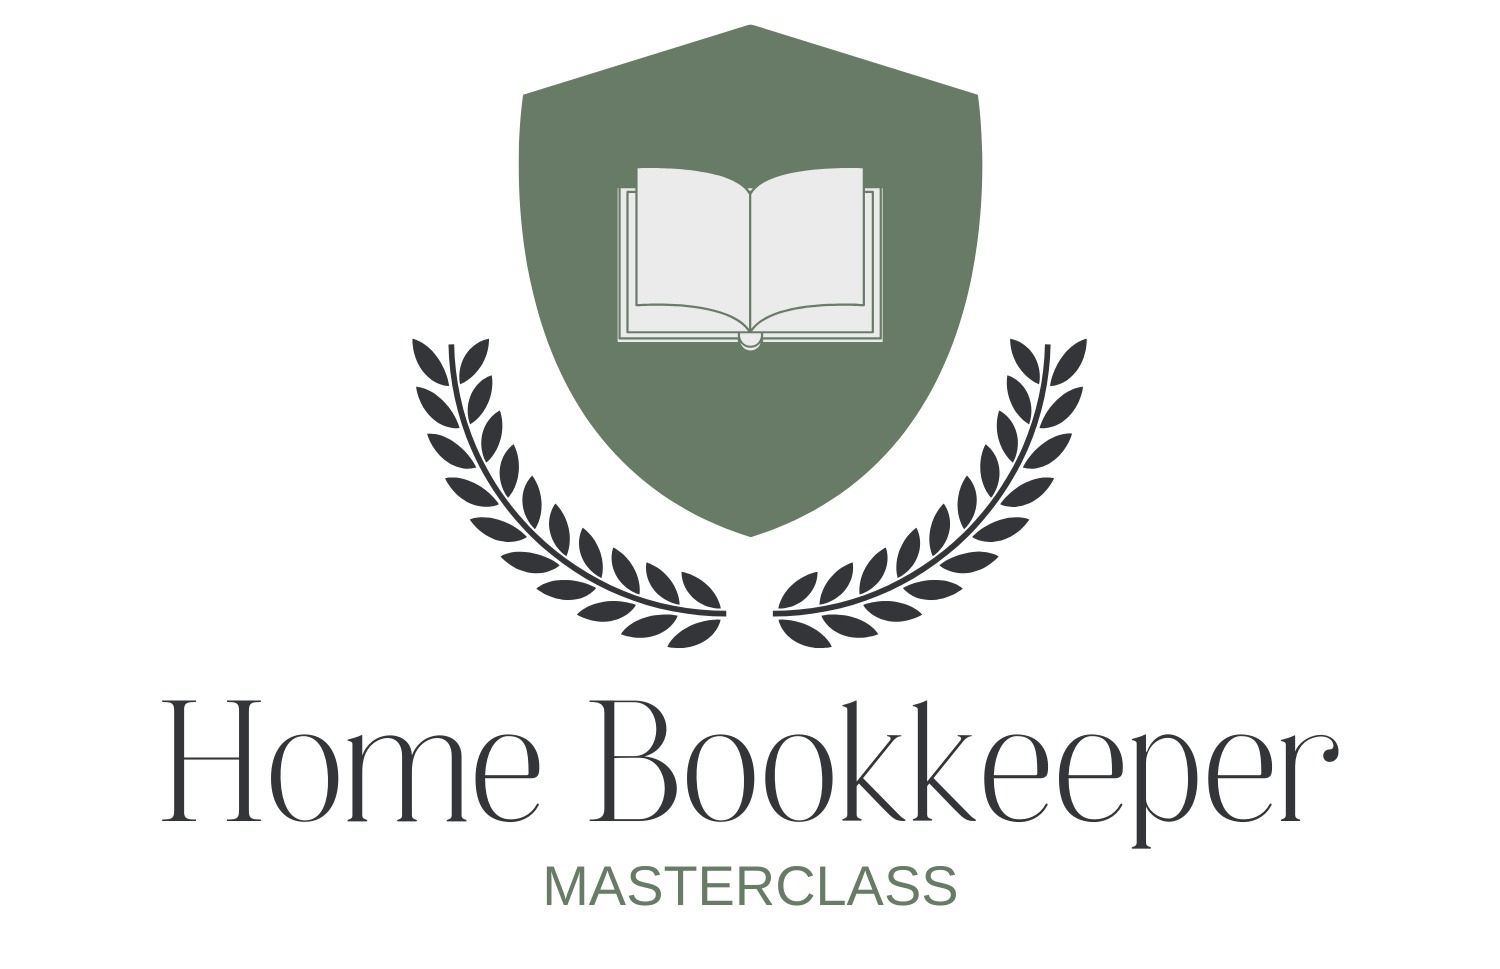 The Home Bookkeeper